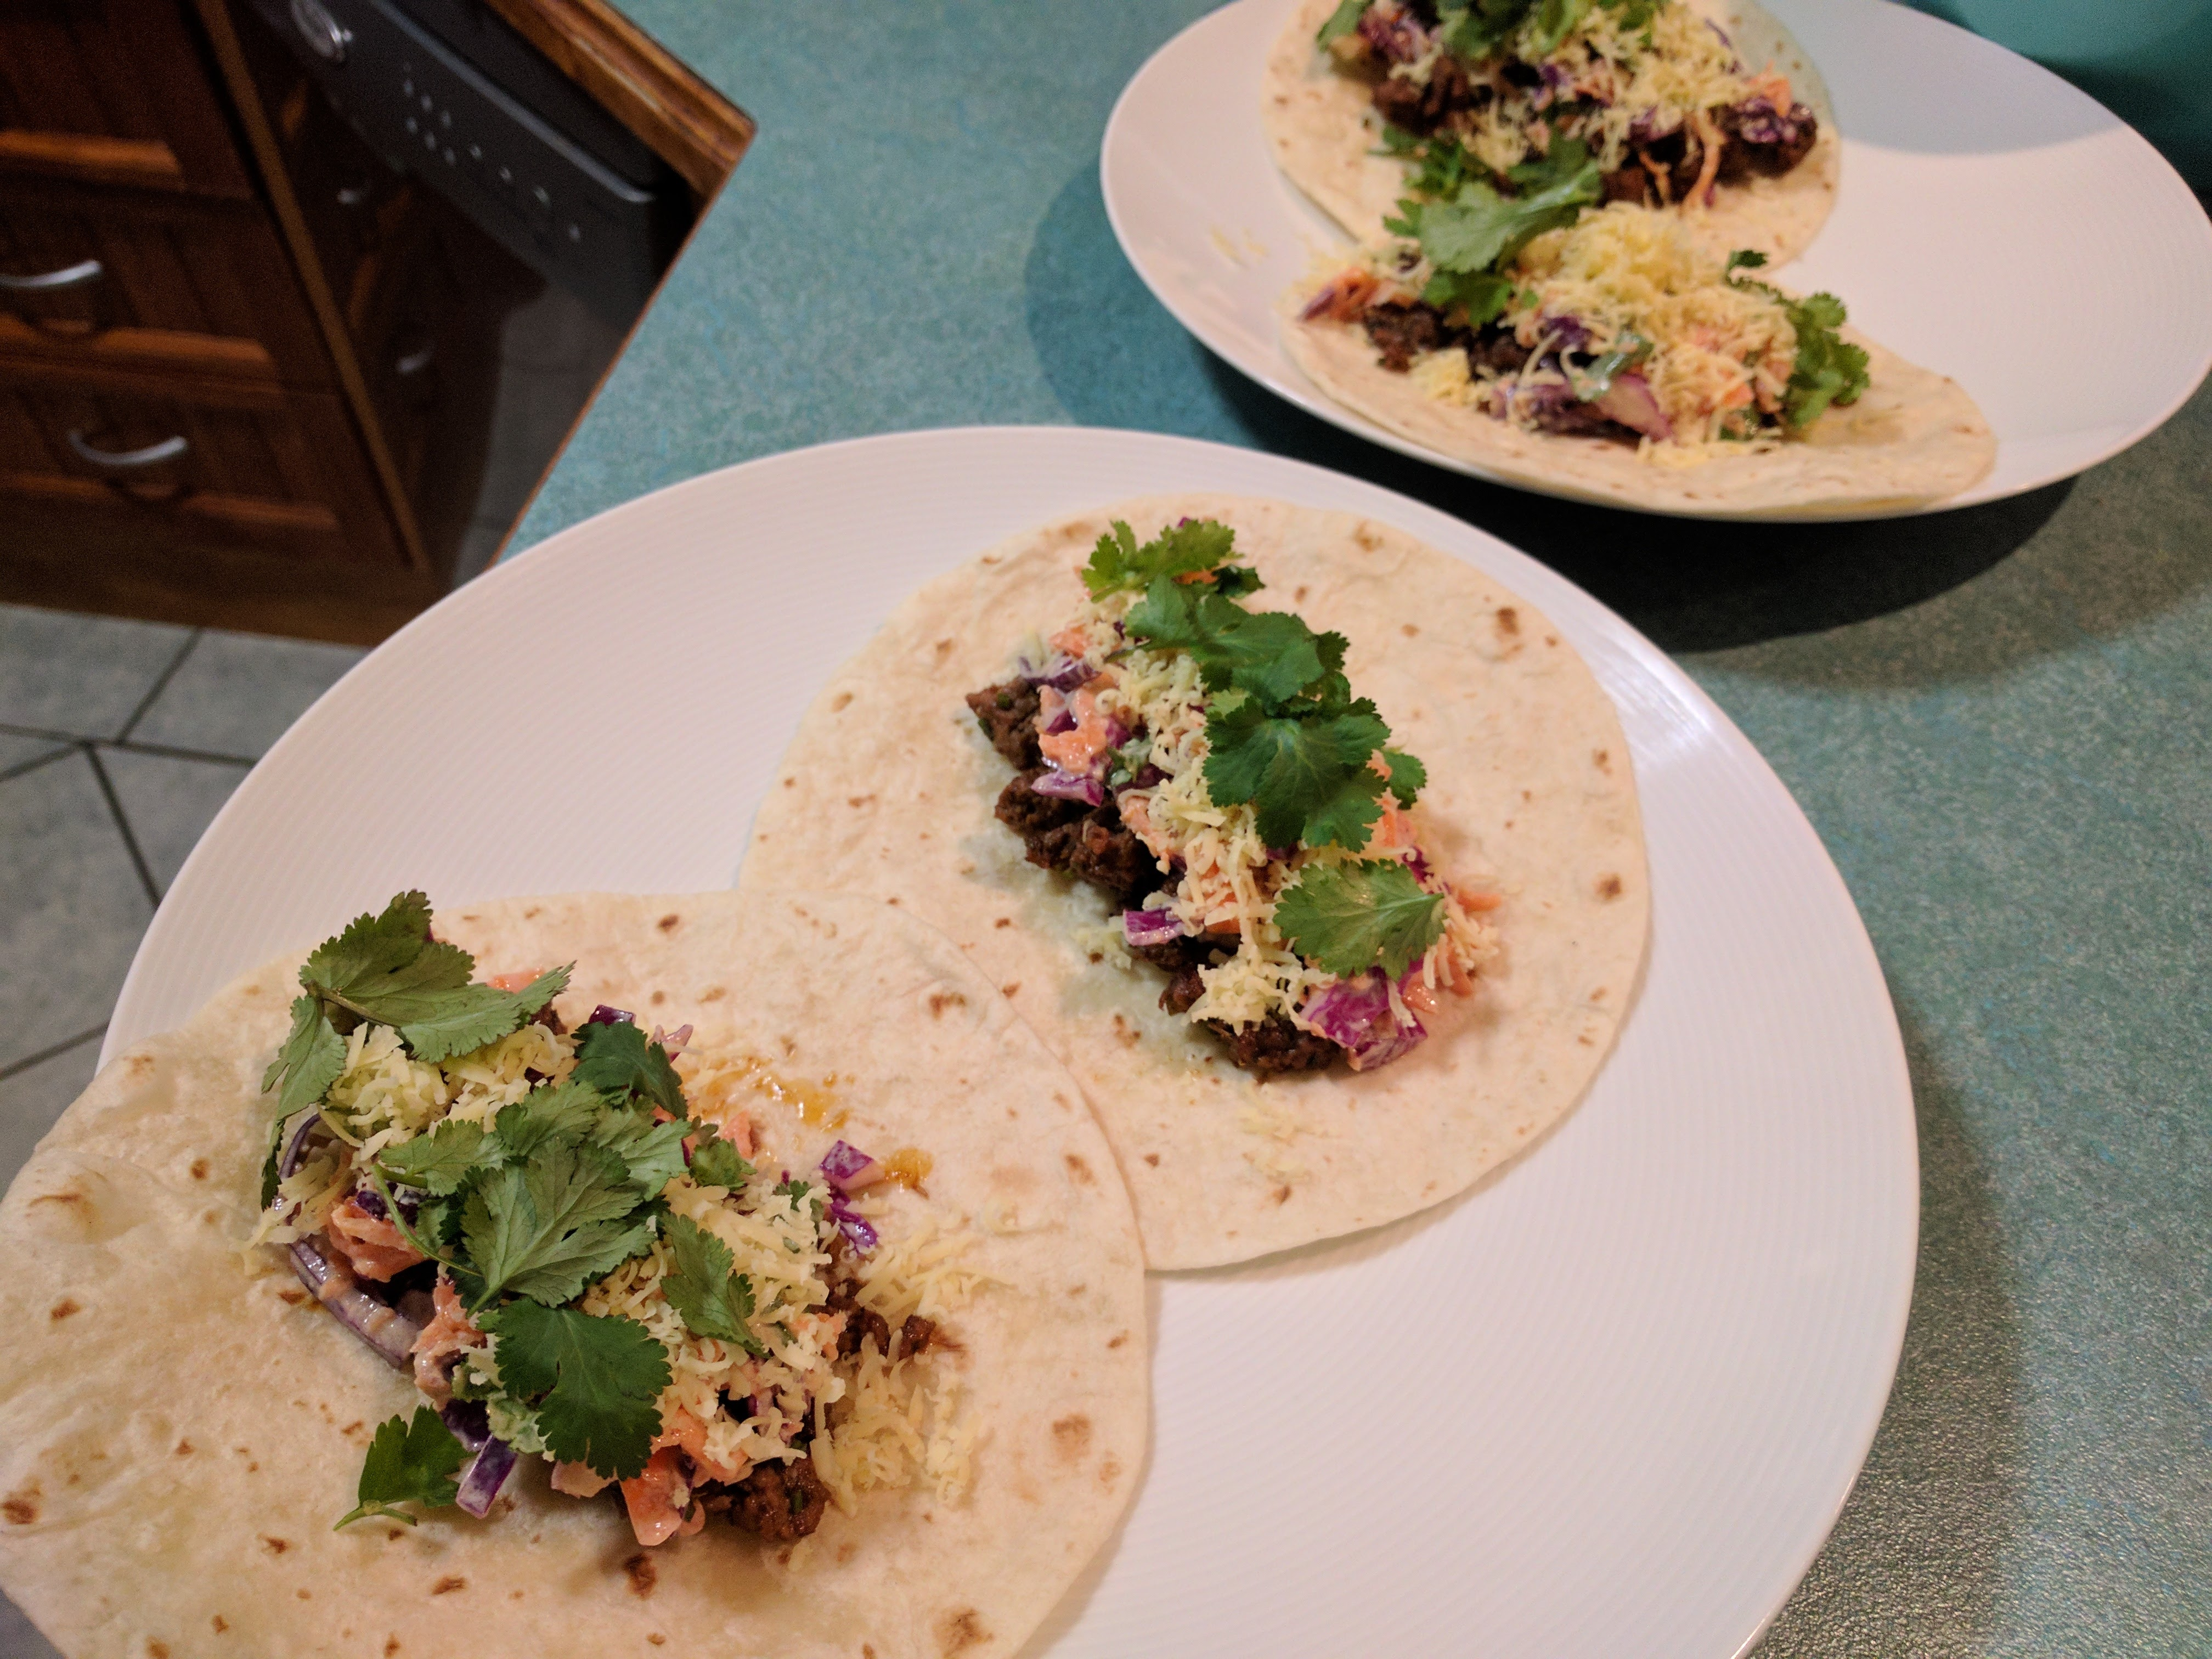 Beef and cheddar tacos